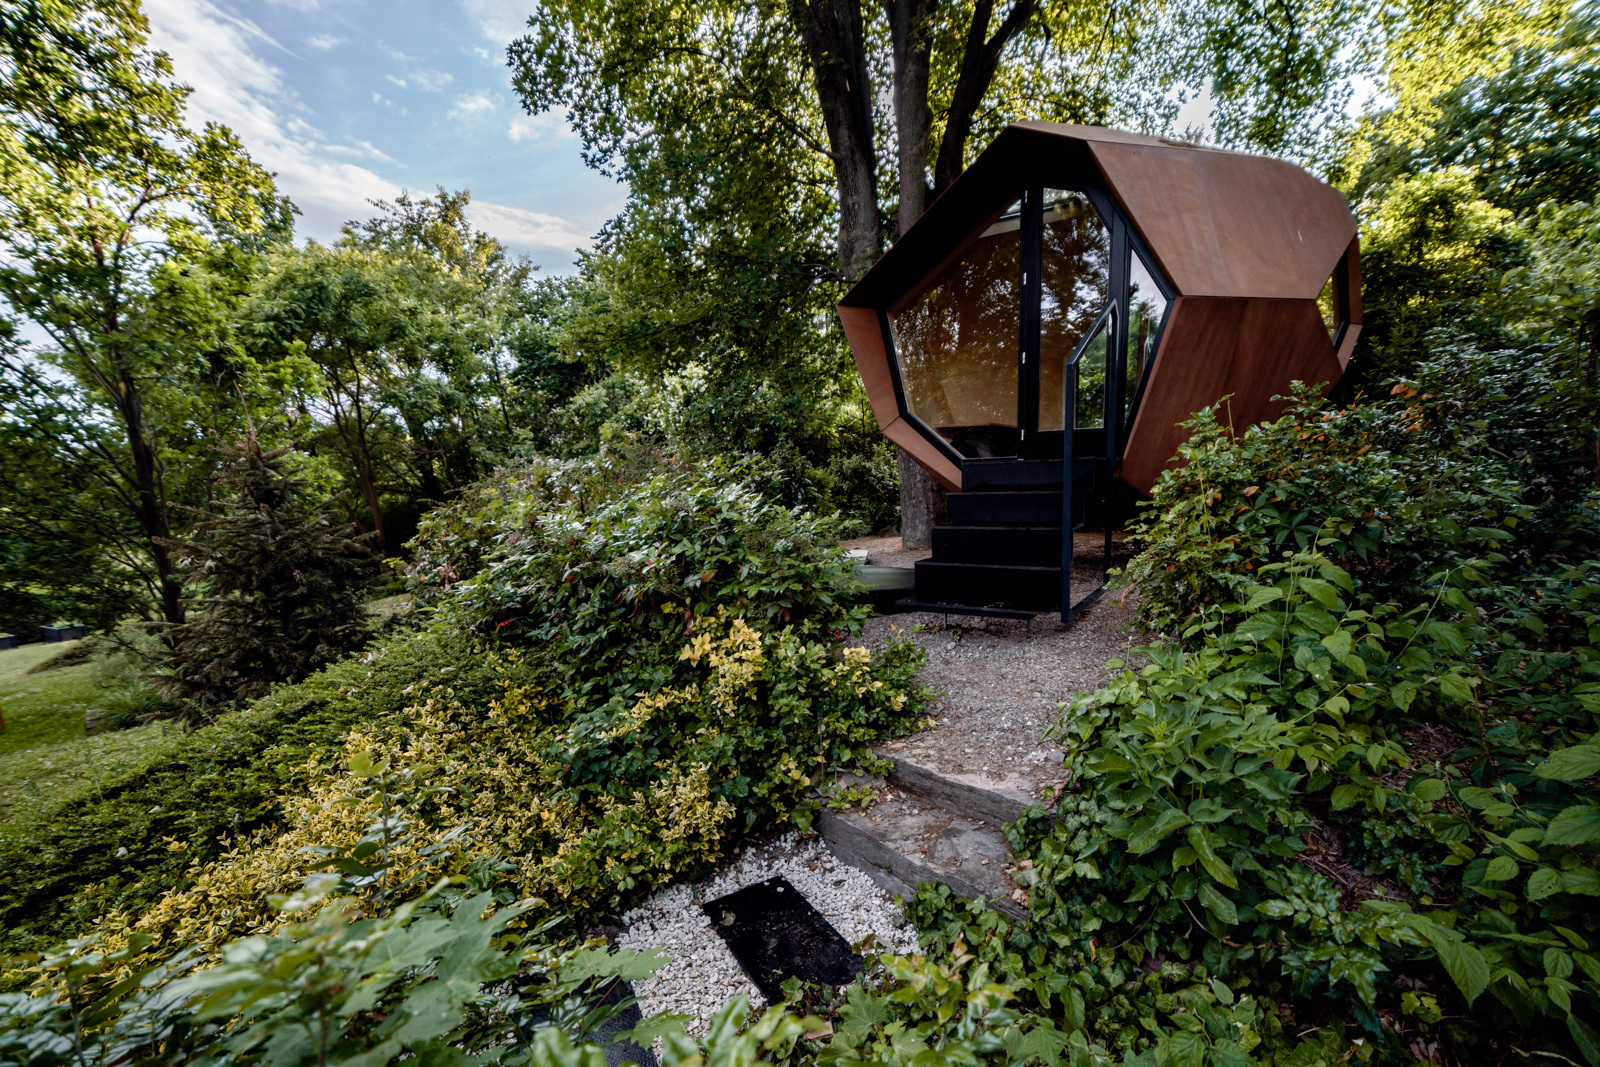 Everywhere booked up this summer? Build your own glamping cabin instead